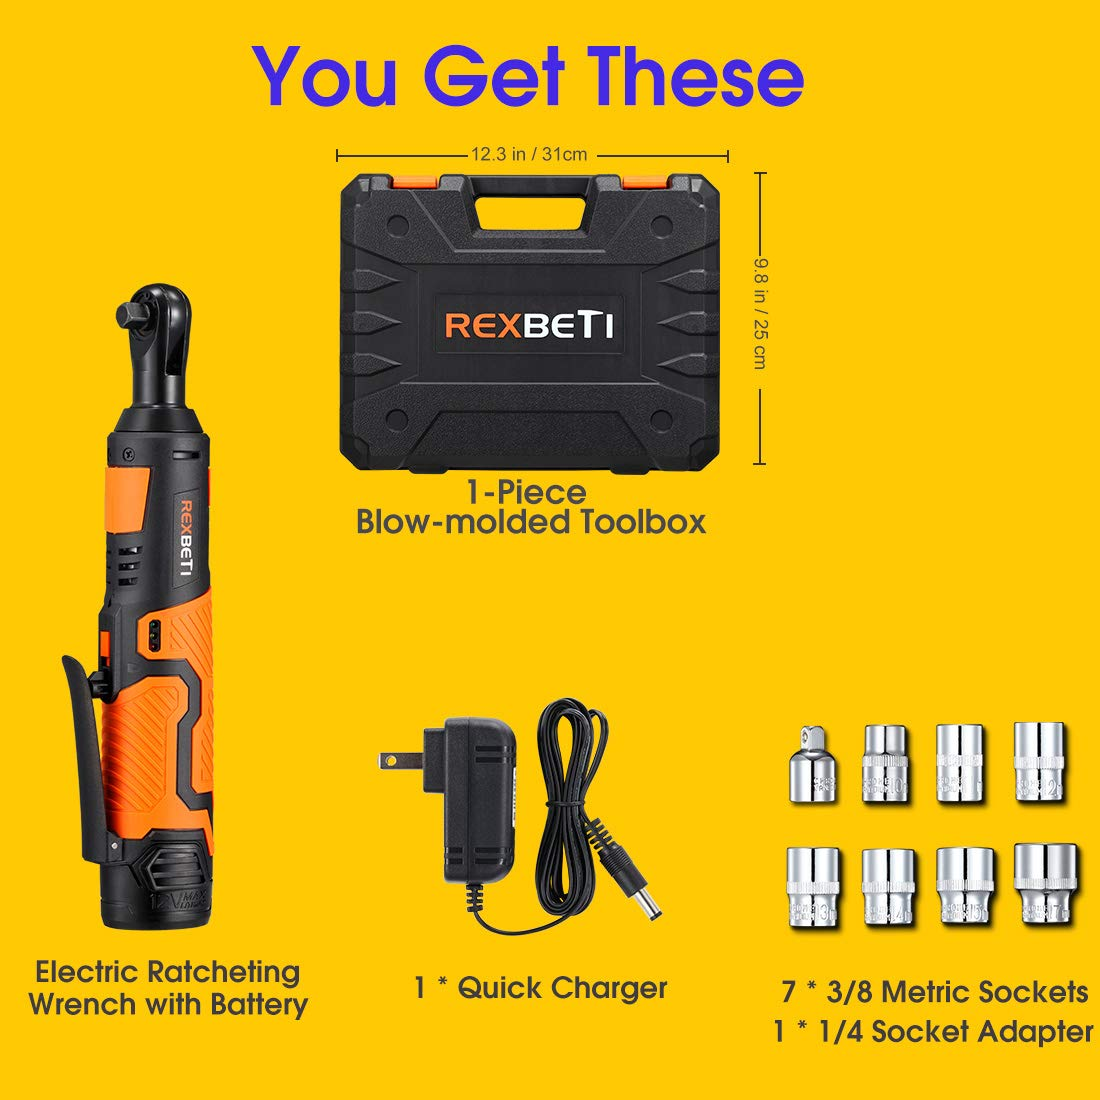 REXBETI Cordless 3/8'' Electric Ratchet Wrench Set with 12V Lithium-Ion Battery and Charger Kit, Include 7-piece 3/8'' Metric Sockets and 1-piece 1/4'' Socket Adapter, 45Nm of Maximum Torque by REXBETI (Image #7)